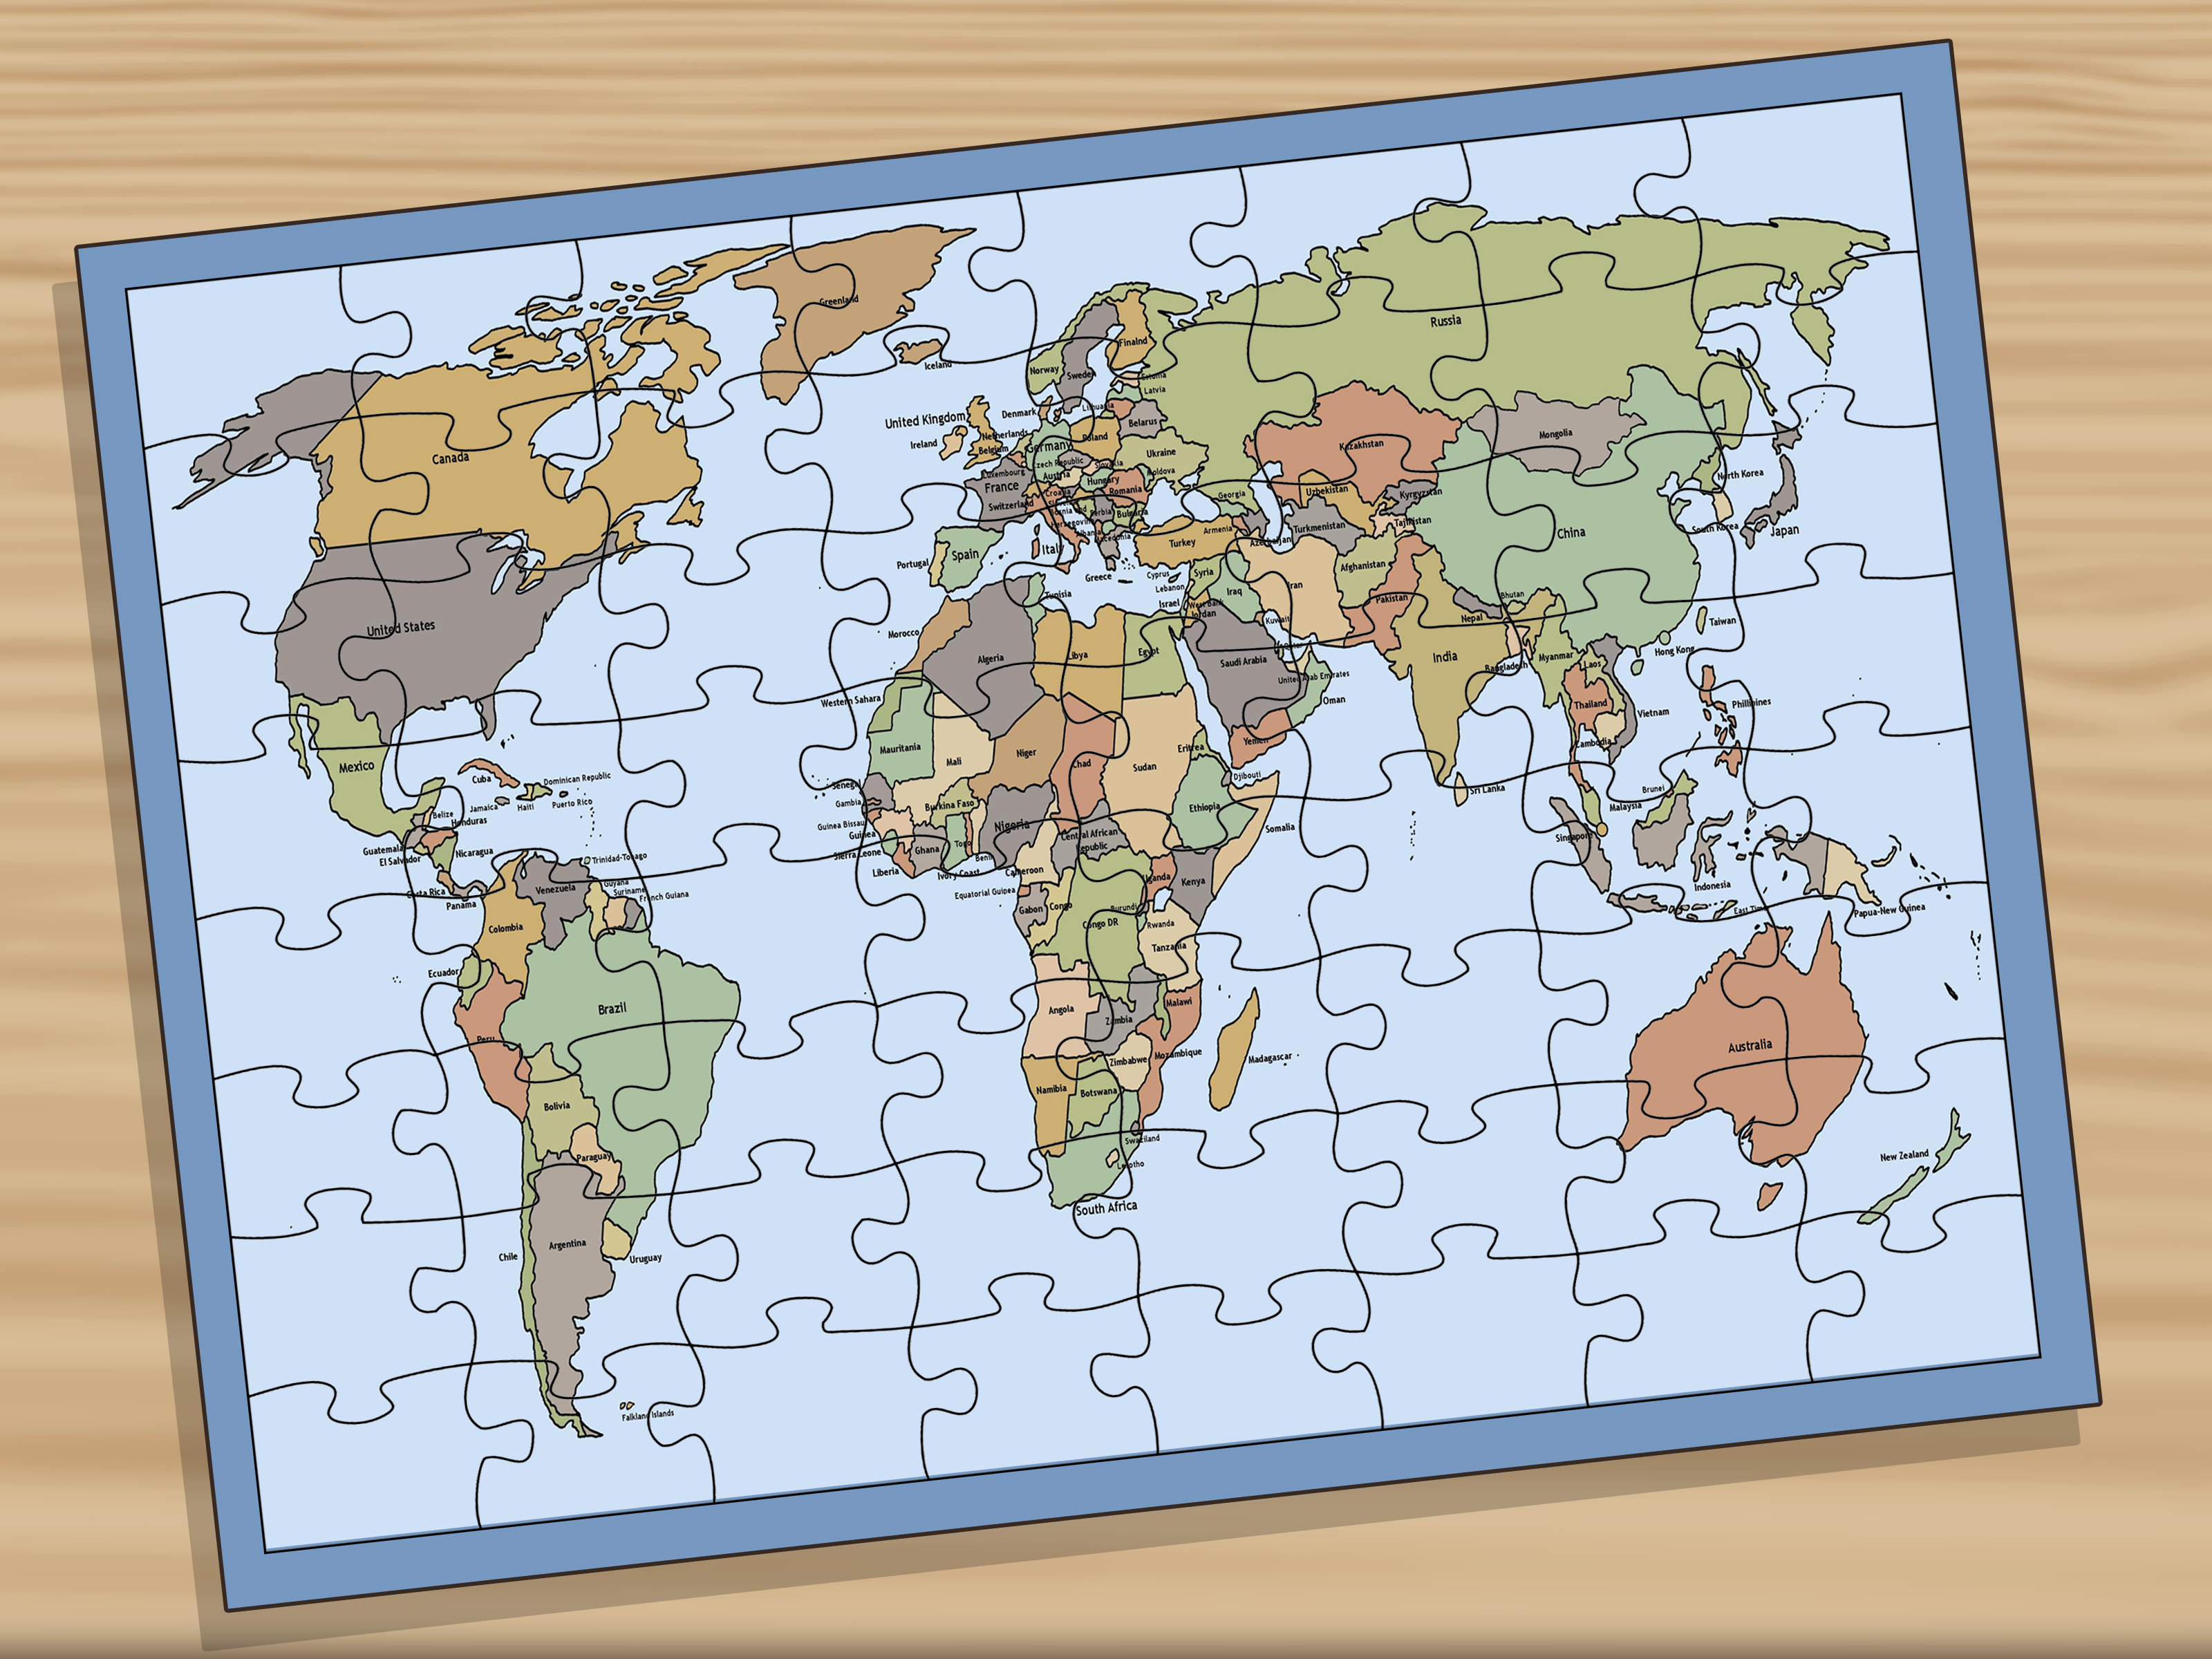 3 Ways To Memorise The Locations Of Countries On A World Map